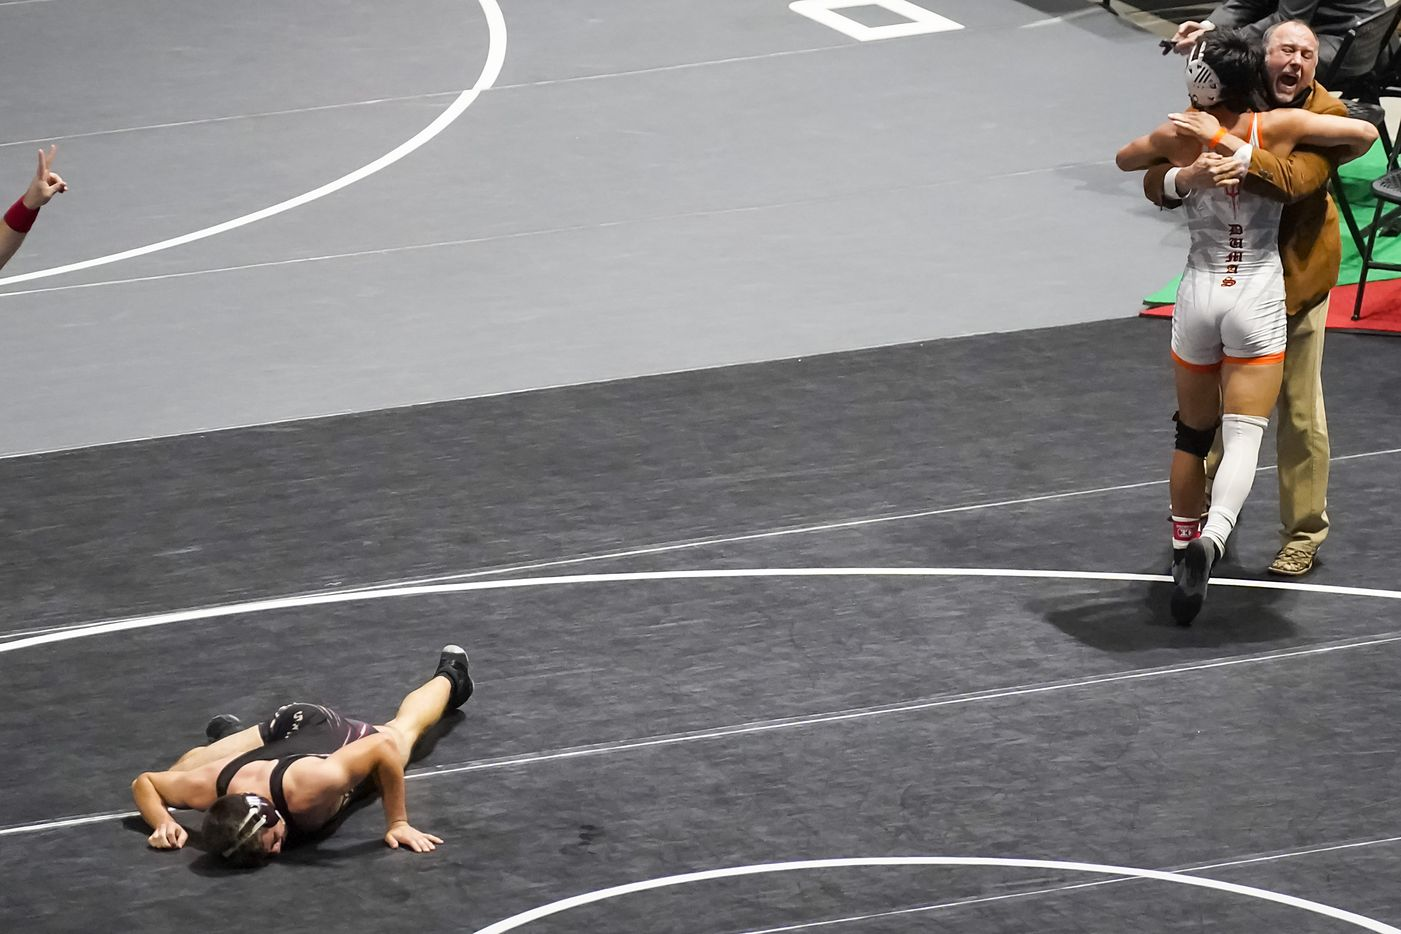 Ahlee Yart of Dumas celebrates after defeatingAnthony Criscione of College Station A&M Consolidated for the 5A boys 138-pound championship during the UIL State Wrestling tournament at the Berry Center on Friday, April 23, 2021, in Cypress, Texas.